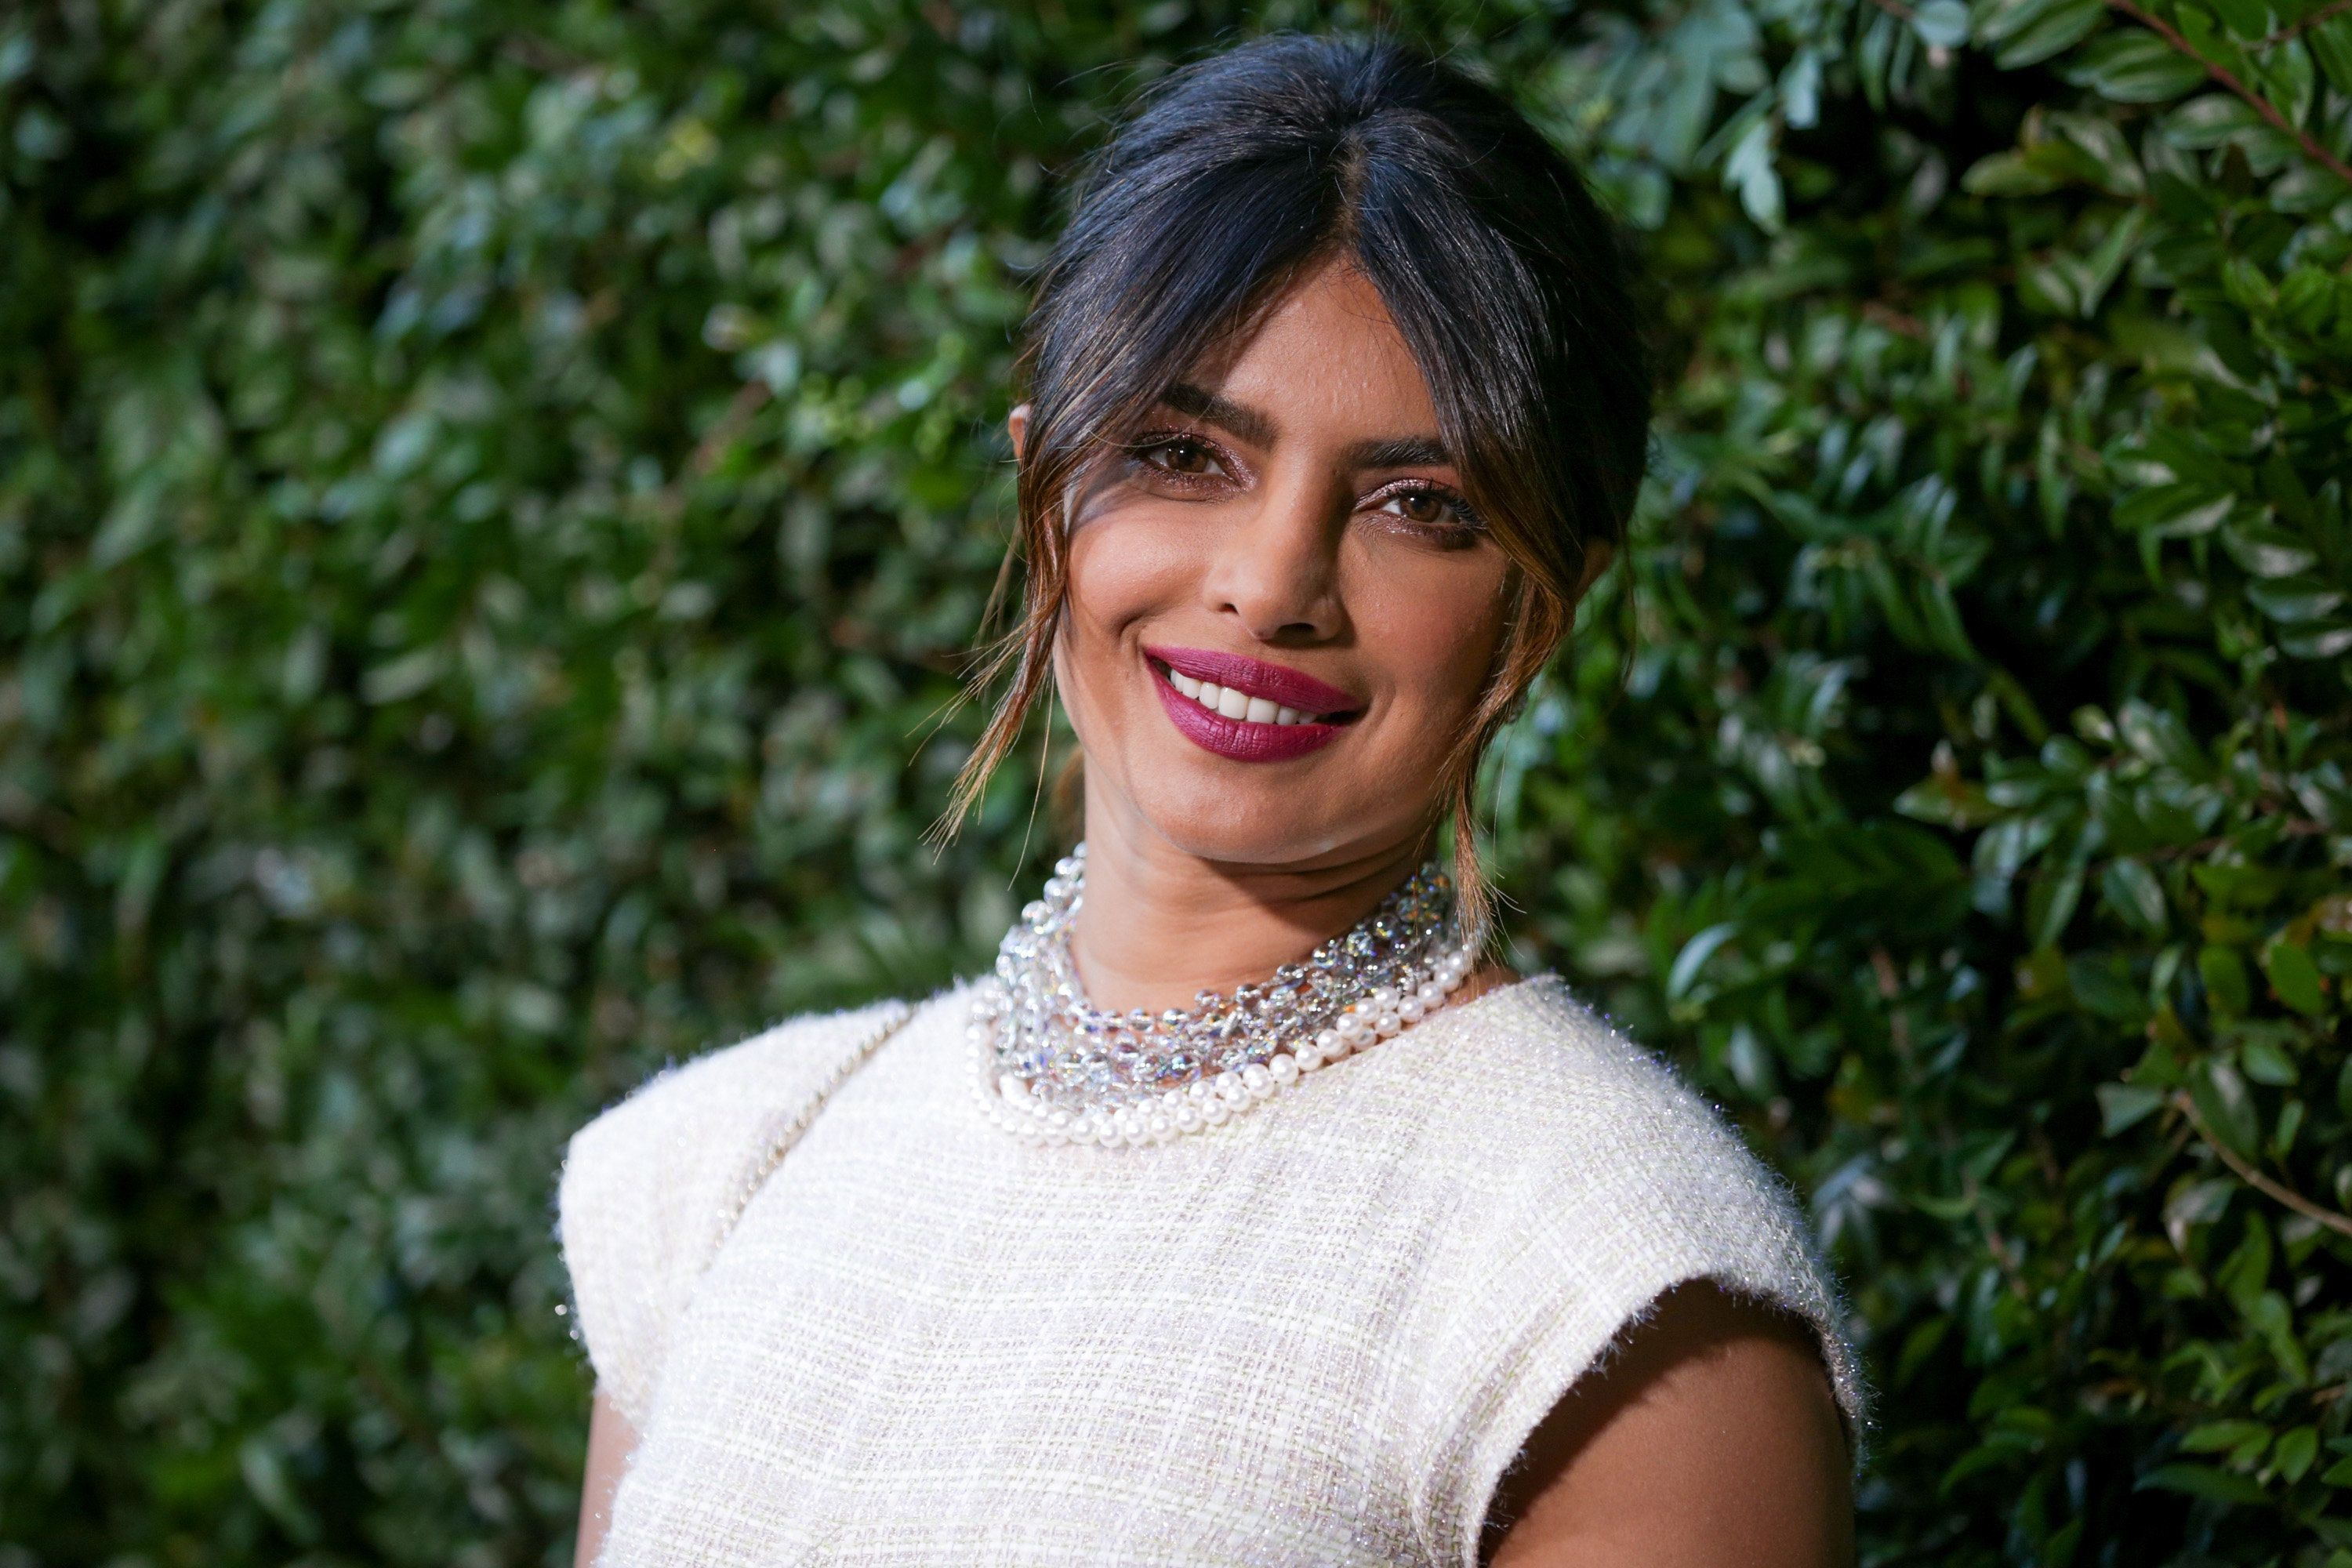 MALIBU, CA - JUNE 02:  Priyanka Chopra attends the CHANEL Dinner Celebrating Our Majestic Oceans, A Benefit For NRDC on June 2, 2018 in Malibu, California.  (Photo by Rich Fury/Getty Images)